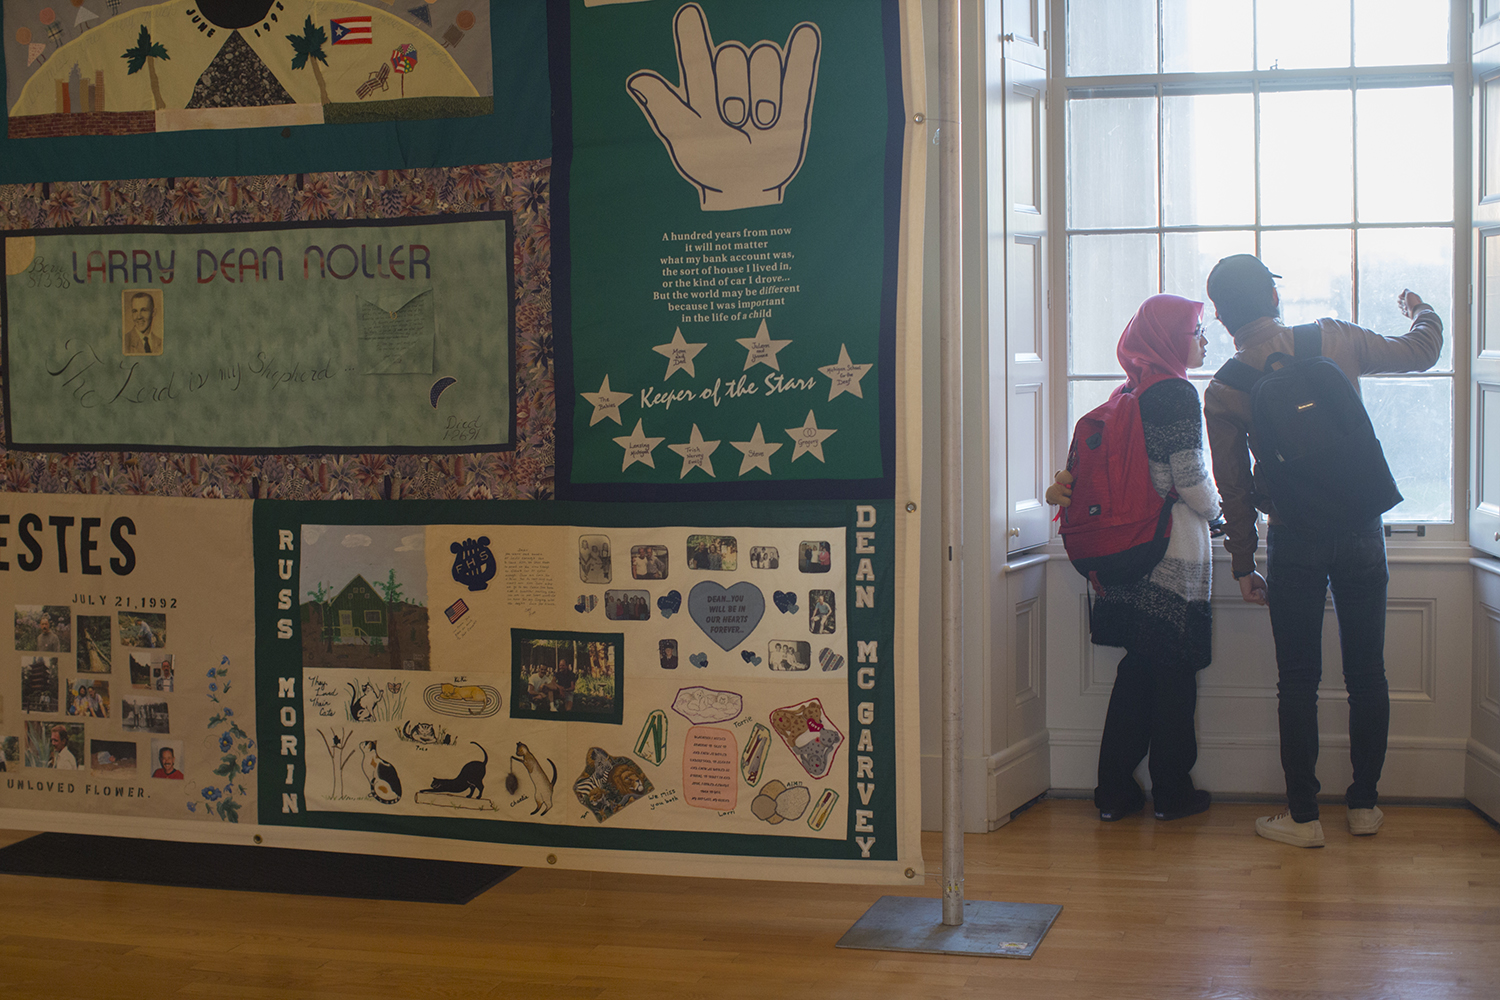 The AIDS memorial quilt is seen in the Old Capitol Museum on Thursday, Nov. 30, 2017. (Lily Smith/The Daily Iowan)